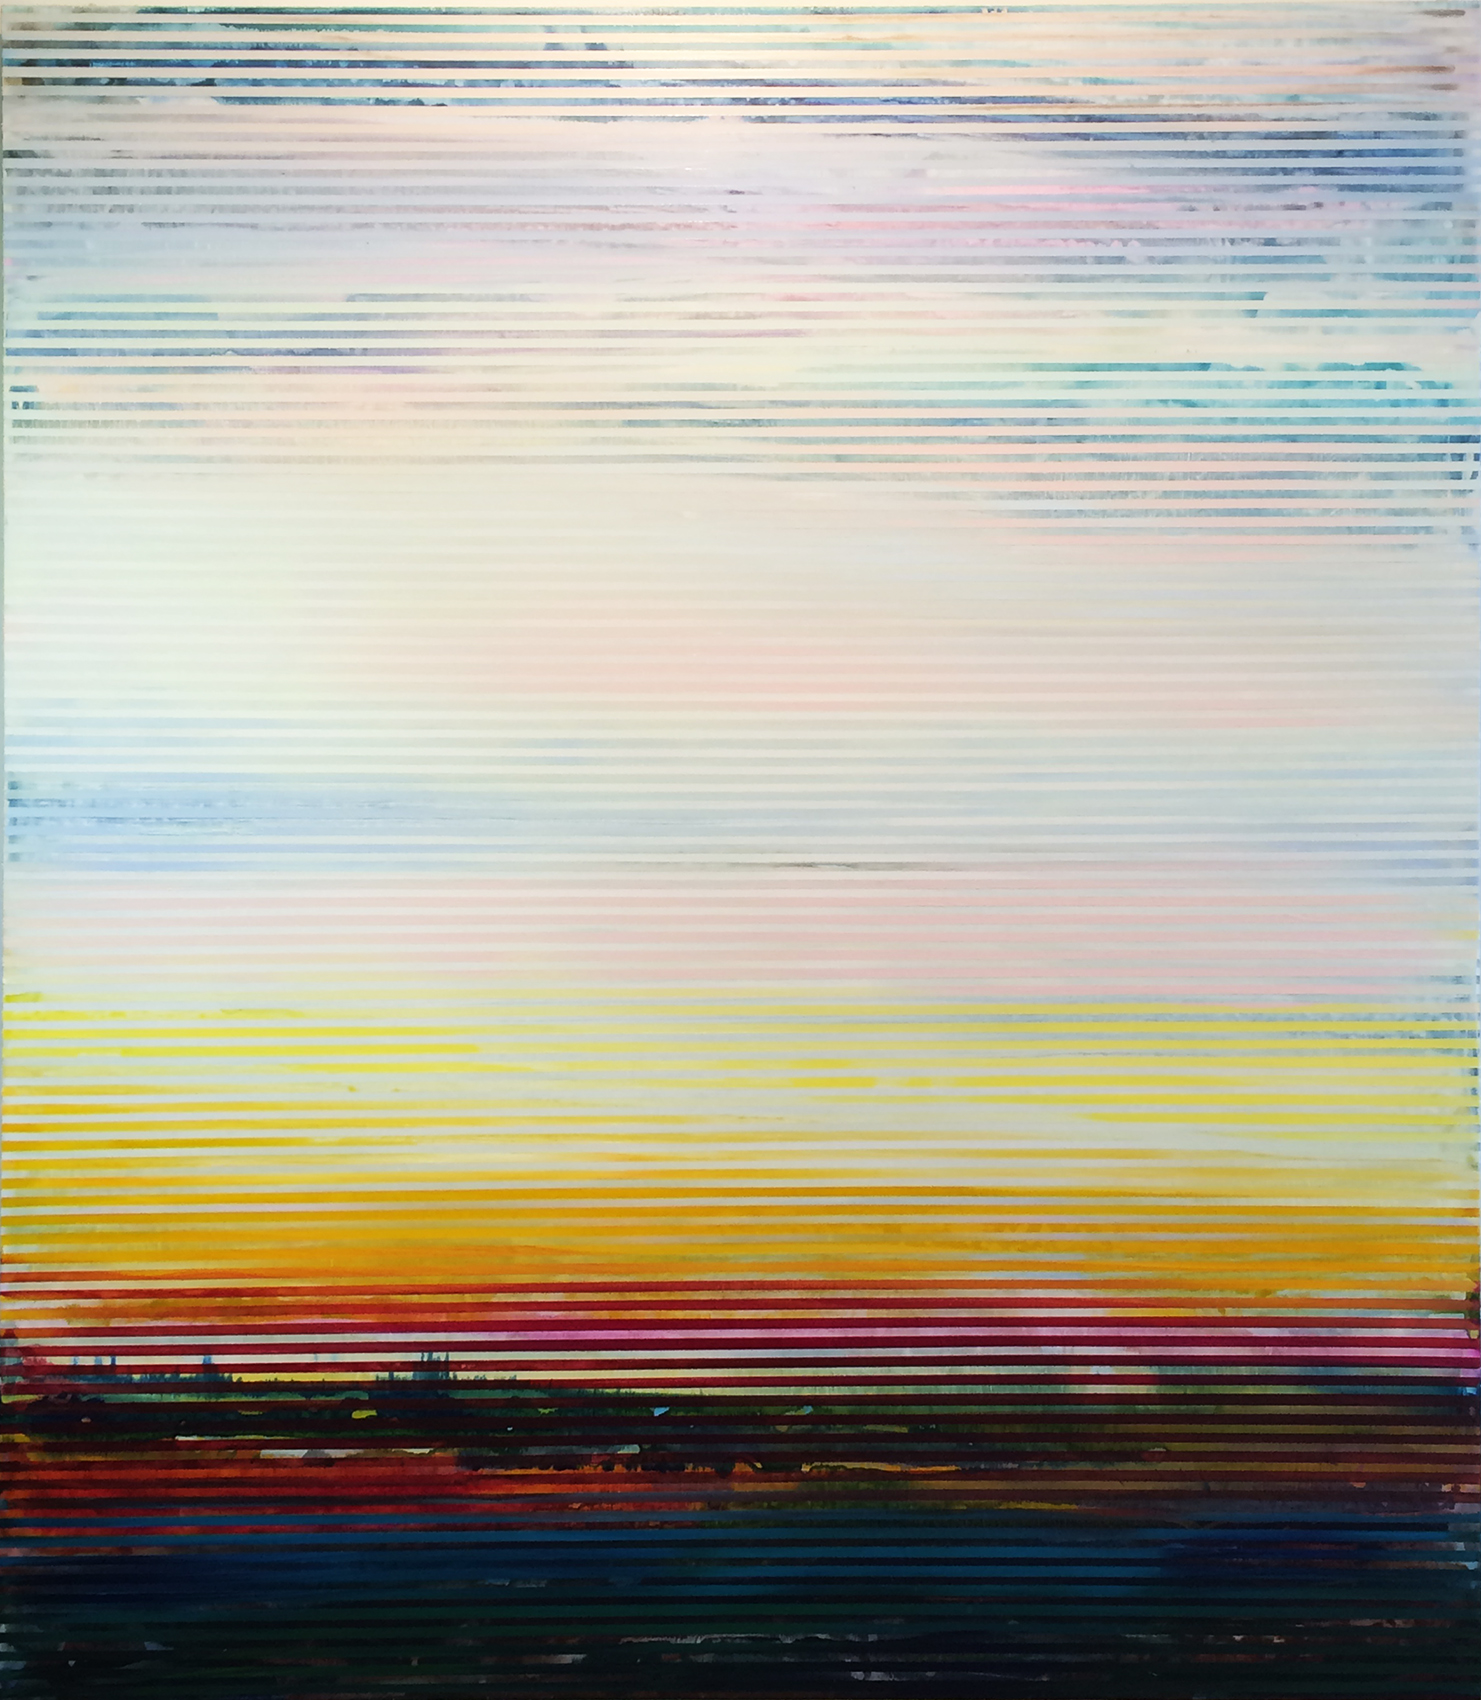 Weaving Landscape No.2_42 x 48 inches_National Home Show_4200.00 plus HST_2017